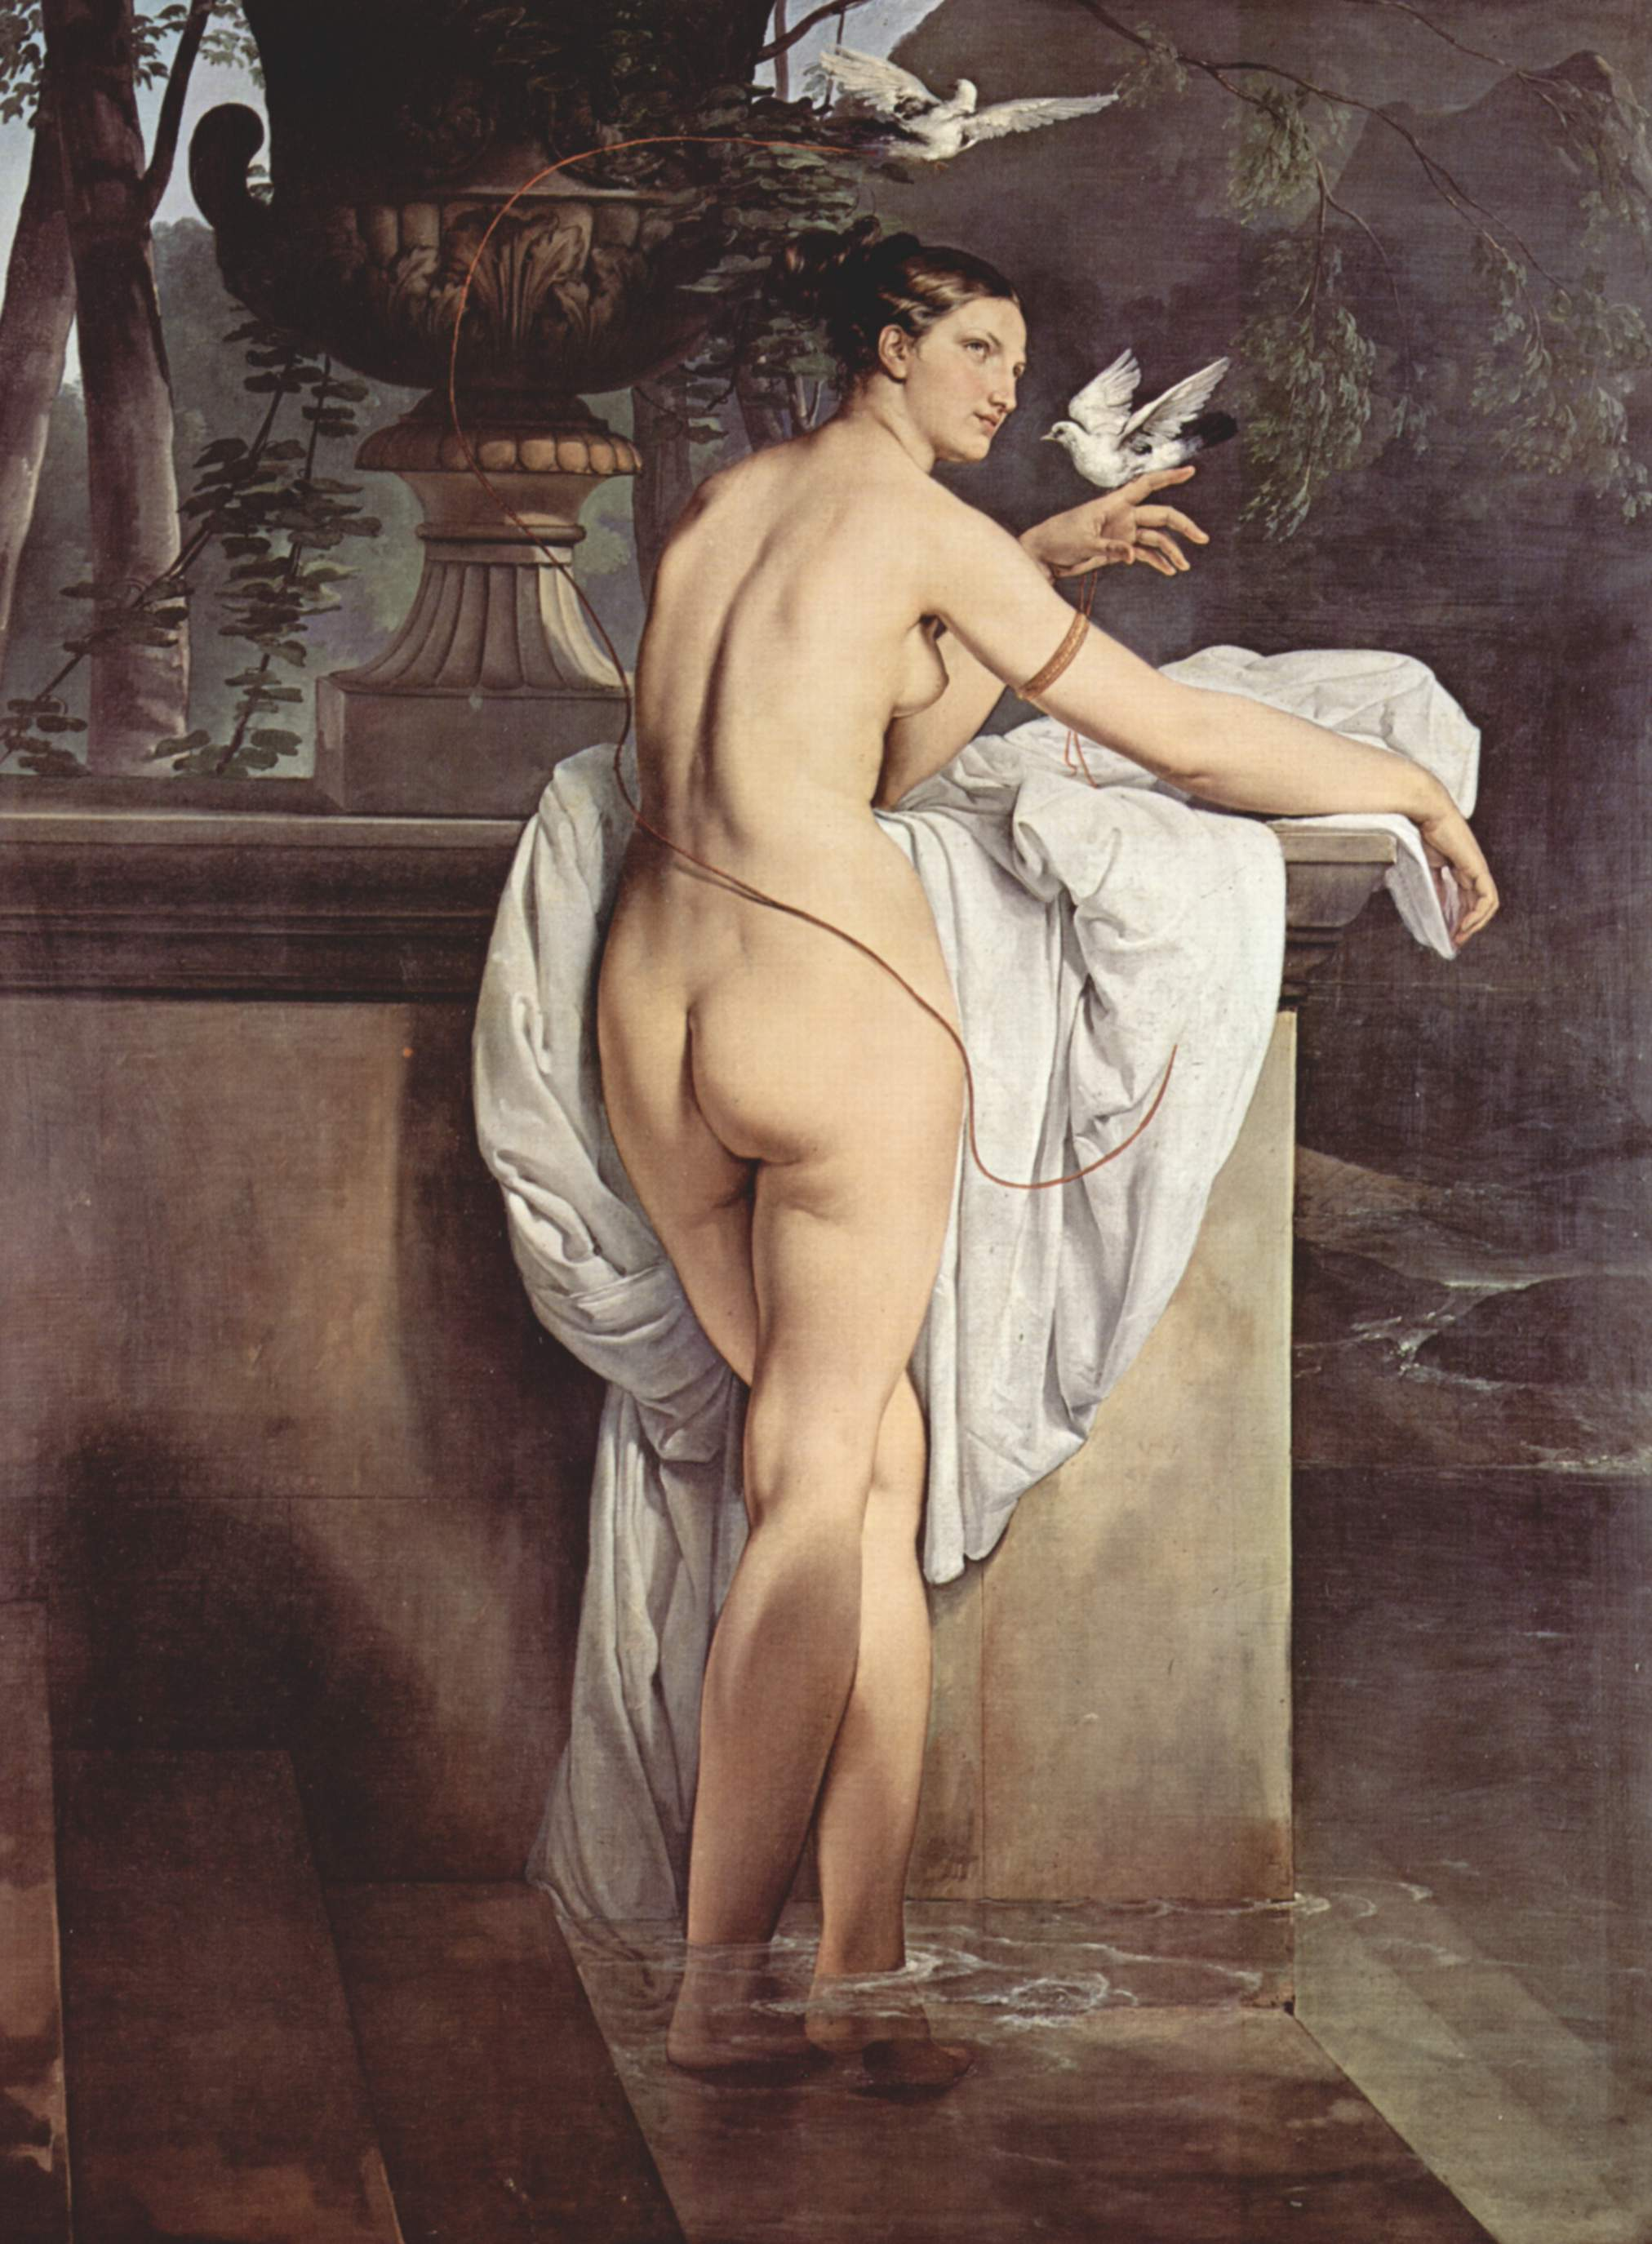 http://uploads8.wikipaintings.org/images/francesco-hayez/ballerina-carlotta-chabert-as-venus-1830.jpg